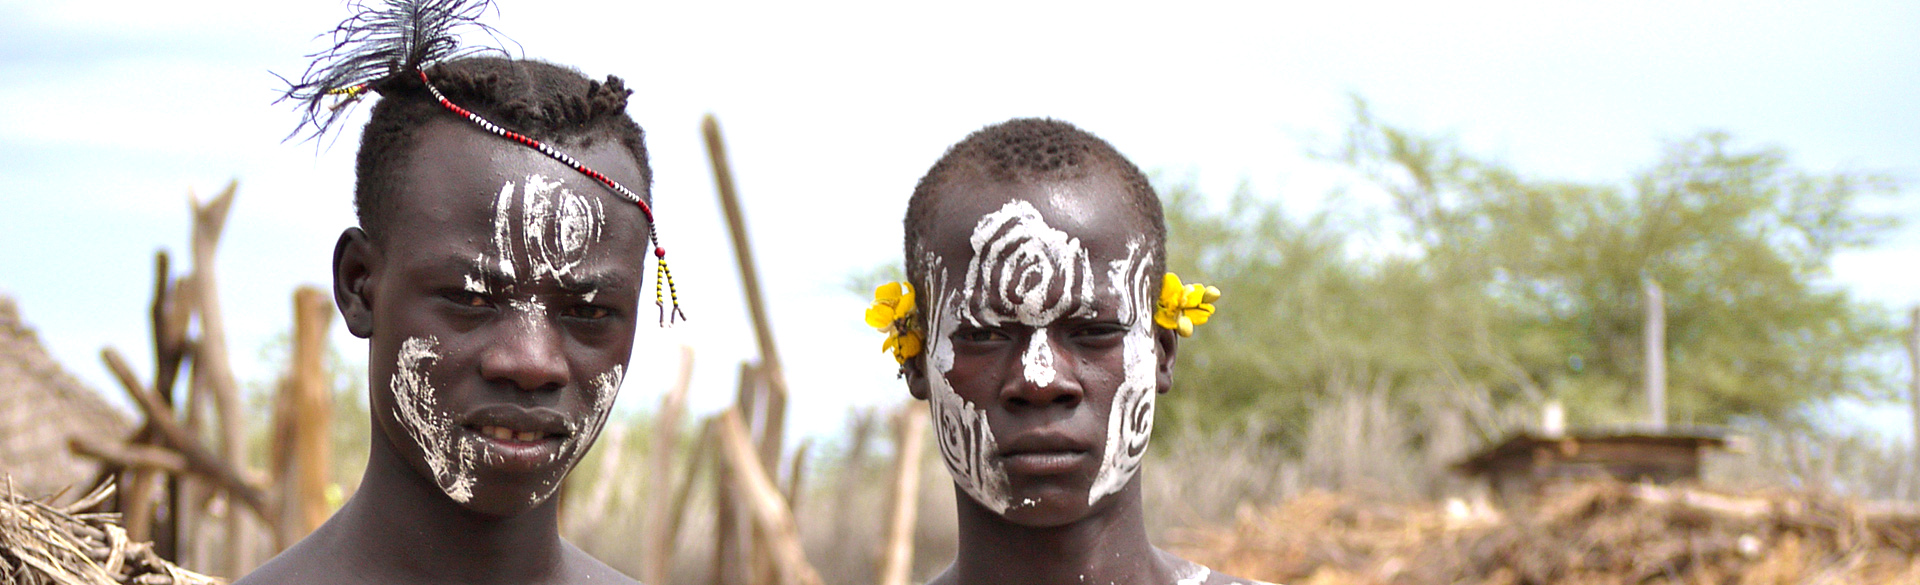 Omo valley men by Trish Berry